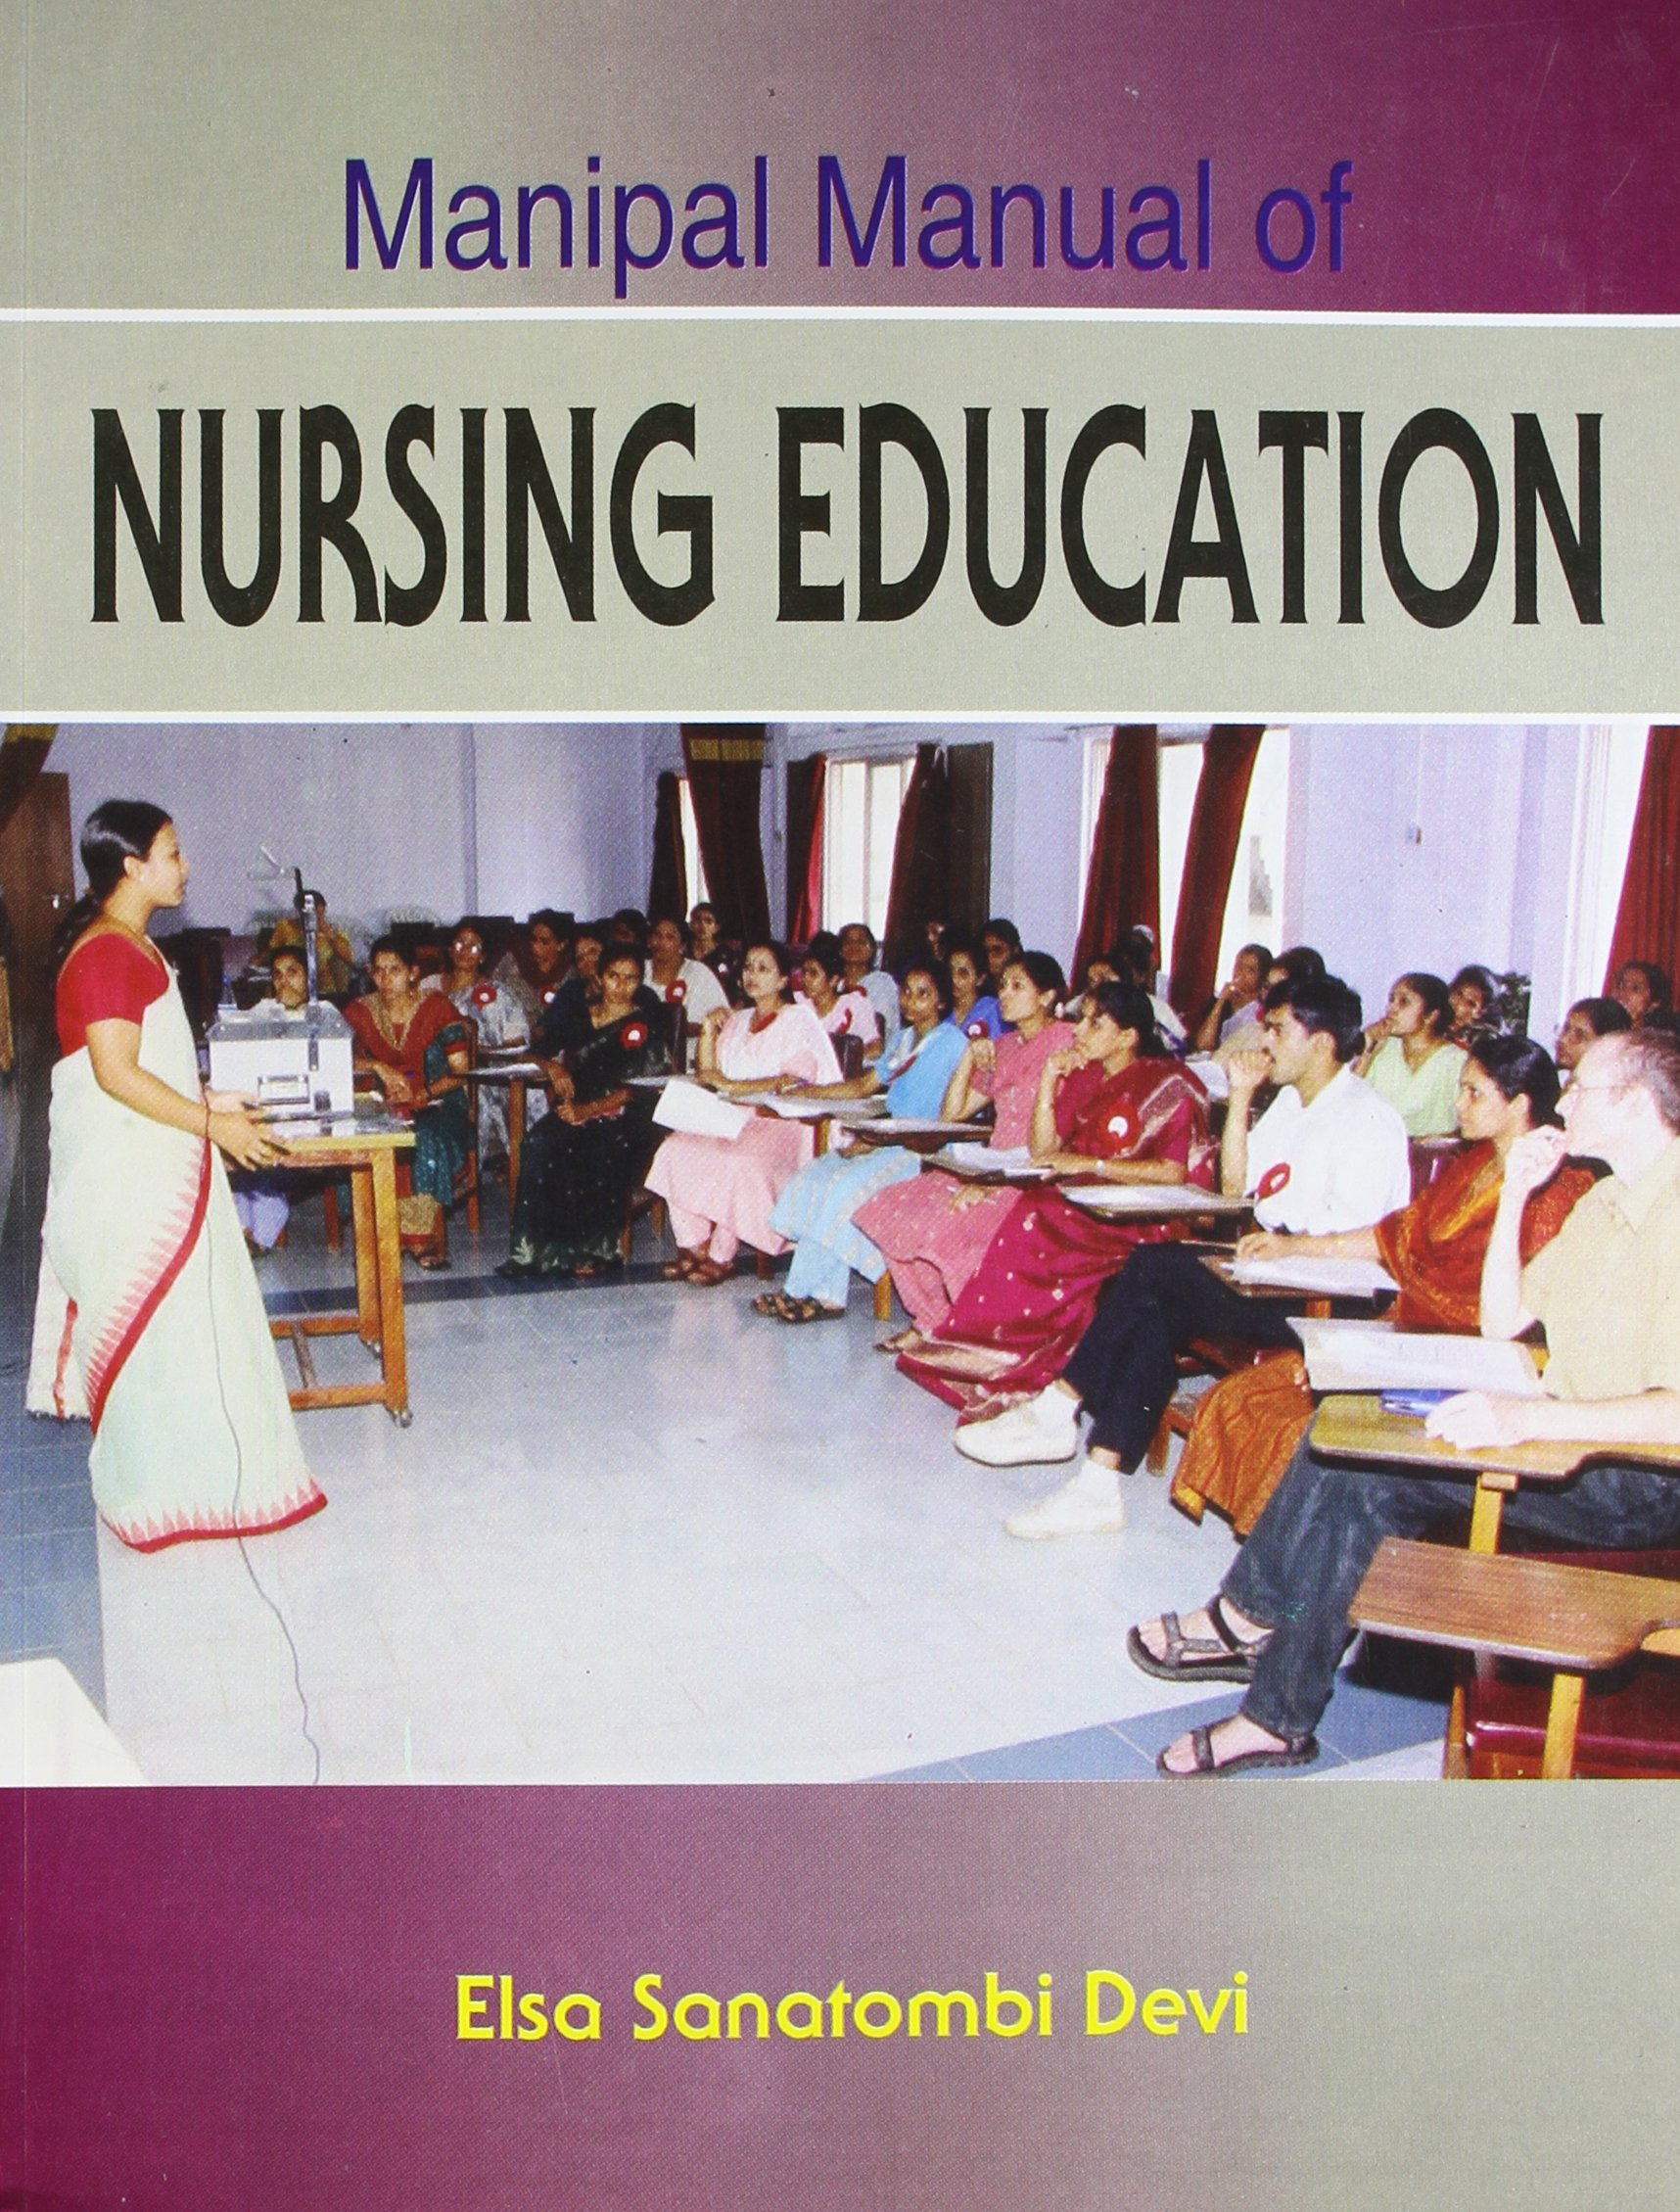 Buy Manipal Manual of Nursing Education Book Online at Low Prices in India    Manipal Manual of Nursing Education Reviews & Ratings - Amazon.in